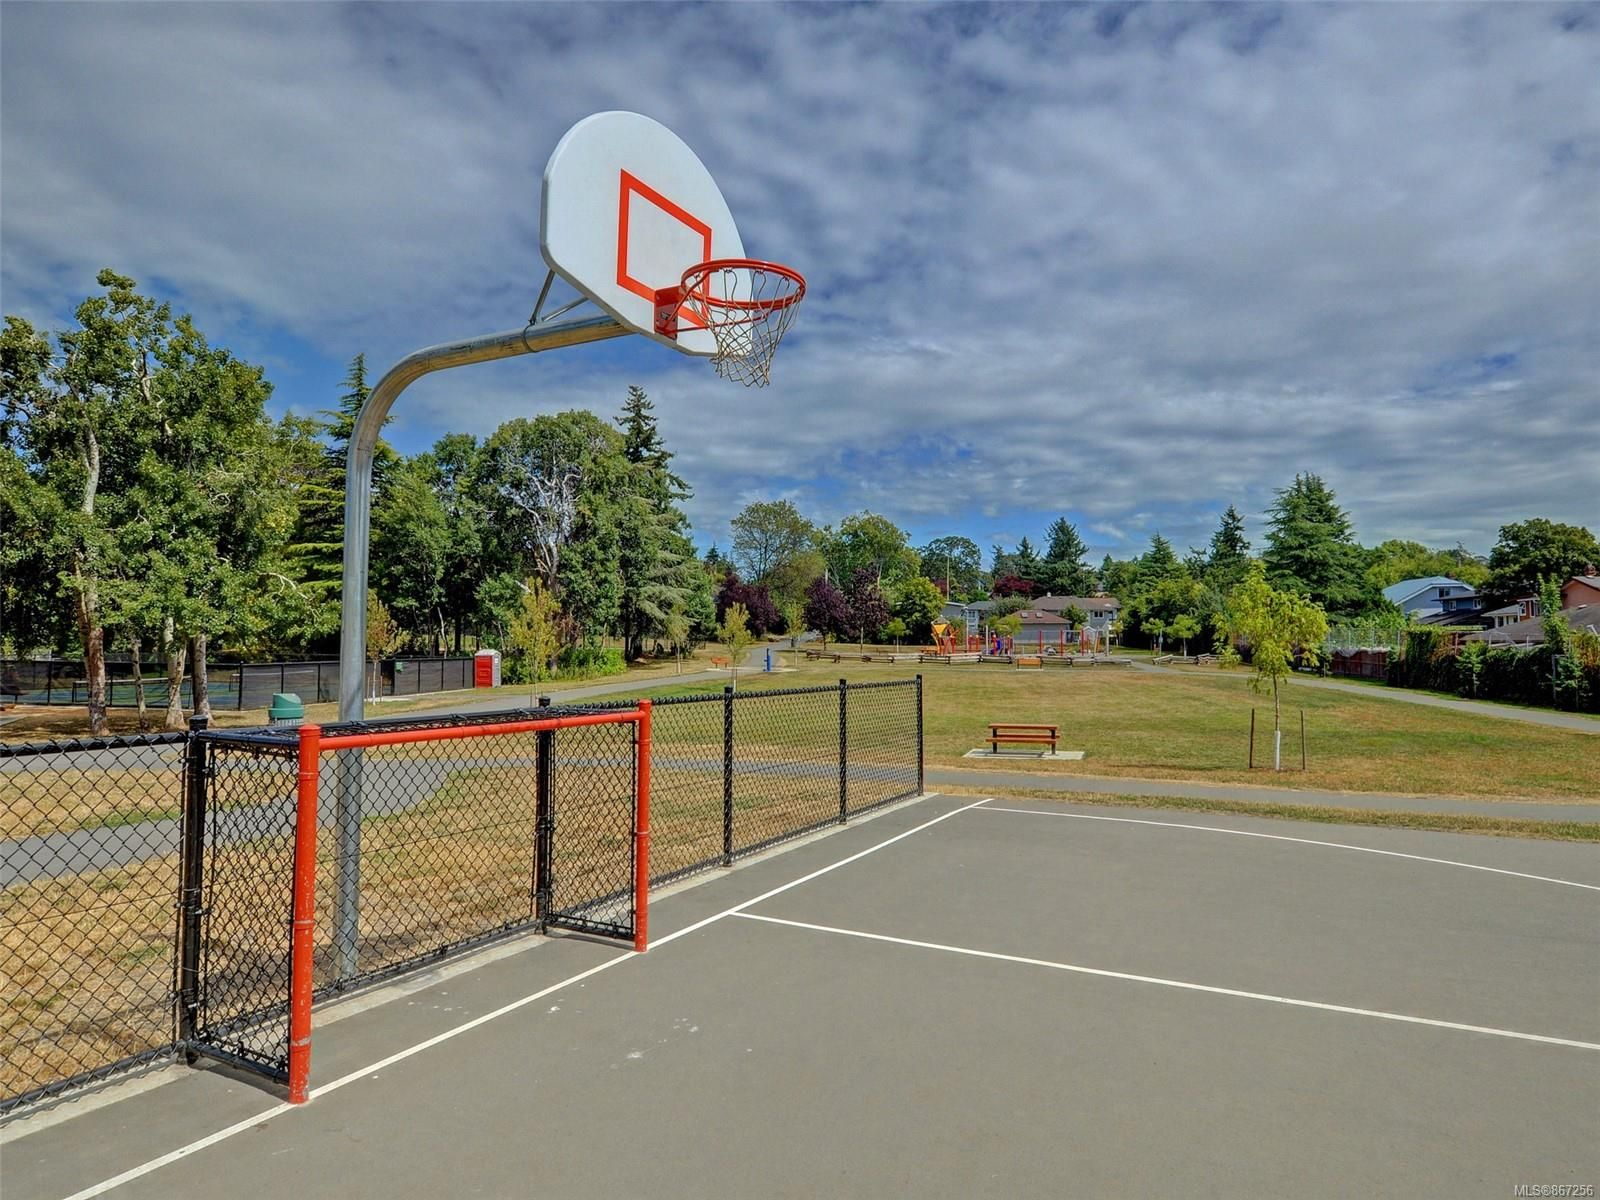 Photo 24: Photos: 5 869 Swan St in : SE Swan Lake Row/Townhouse for sale (Saanich East)  : MLS®# 867256